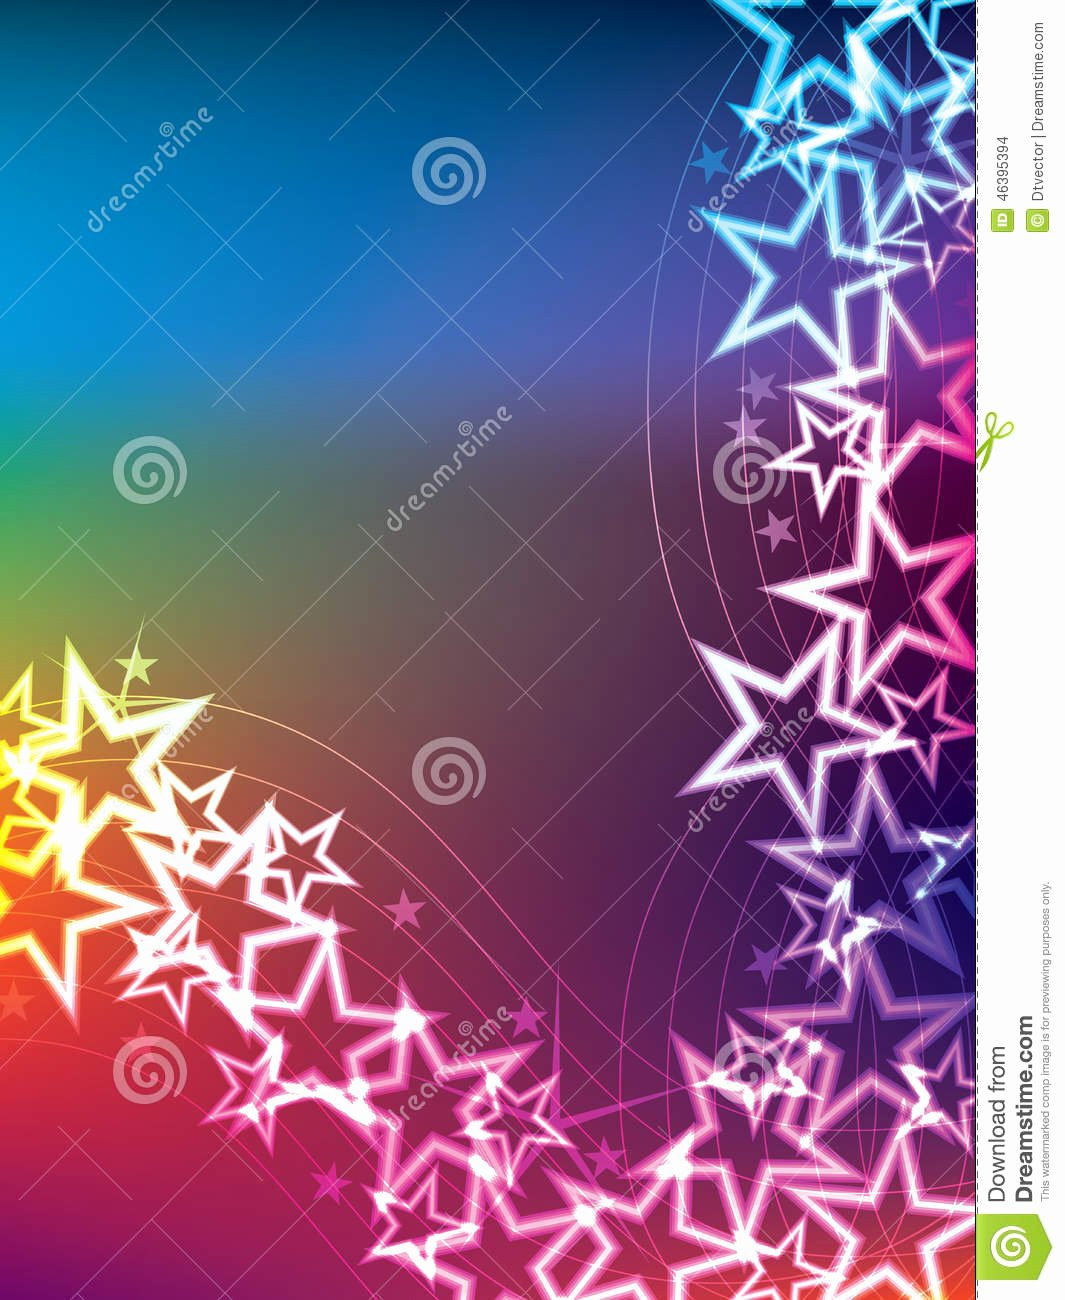 Star Template with Lines New Colorful Star Line Side Stock Vector Image